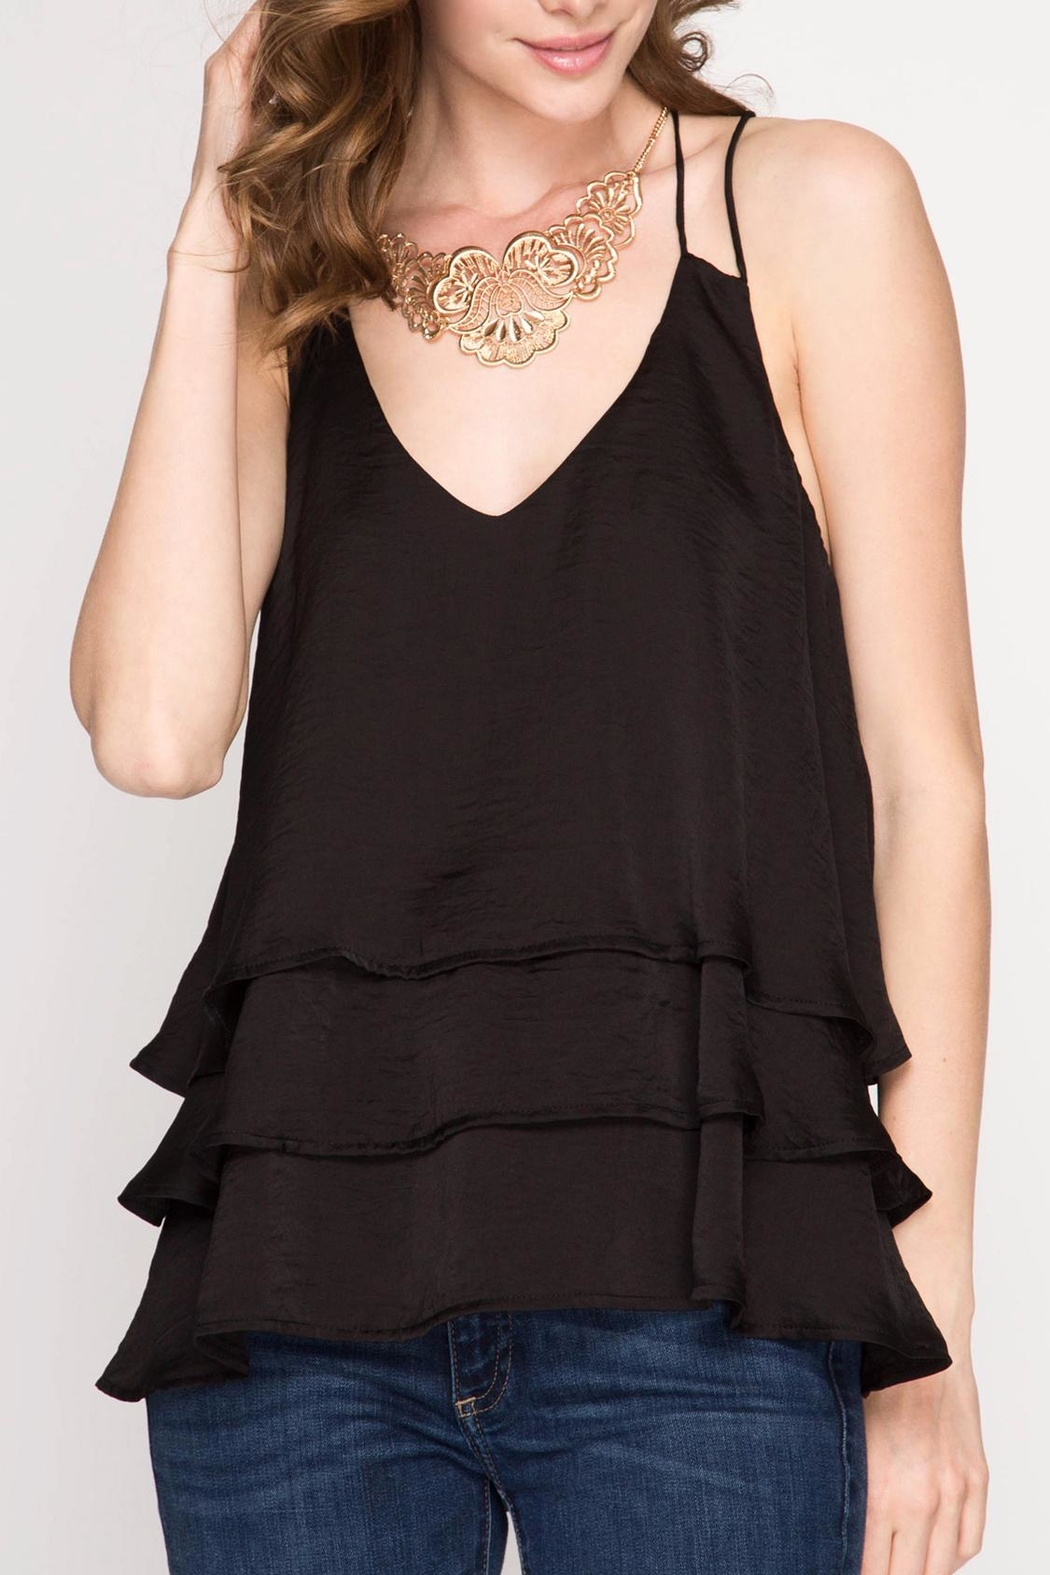 She + Sky Black Ruffle Top - Front Cropped Image